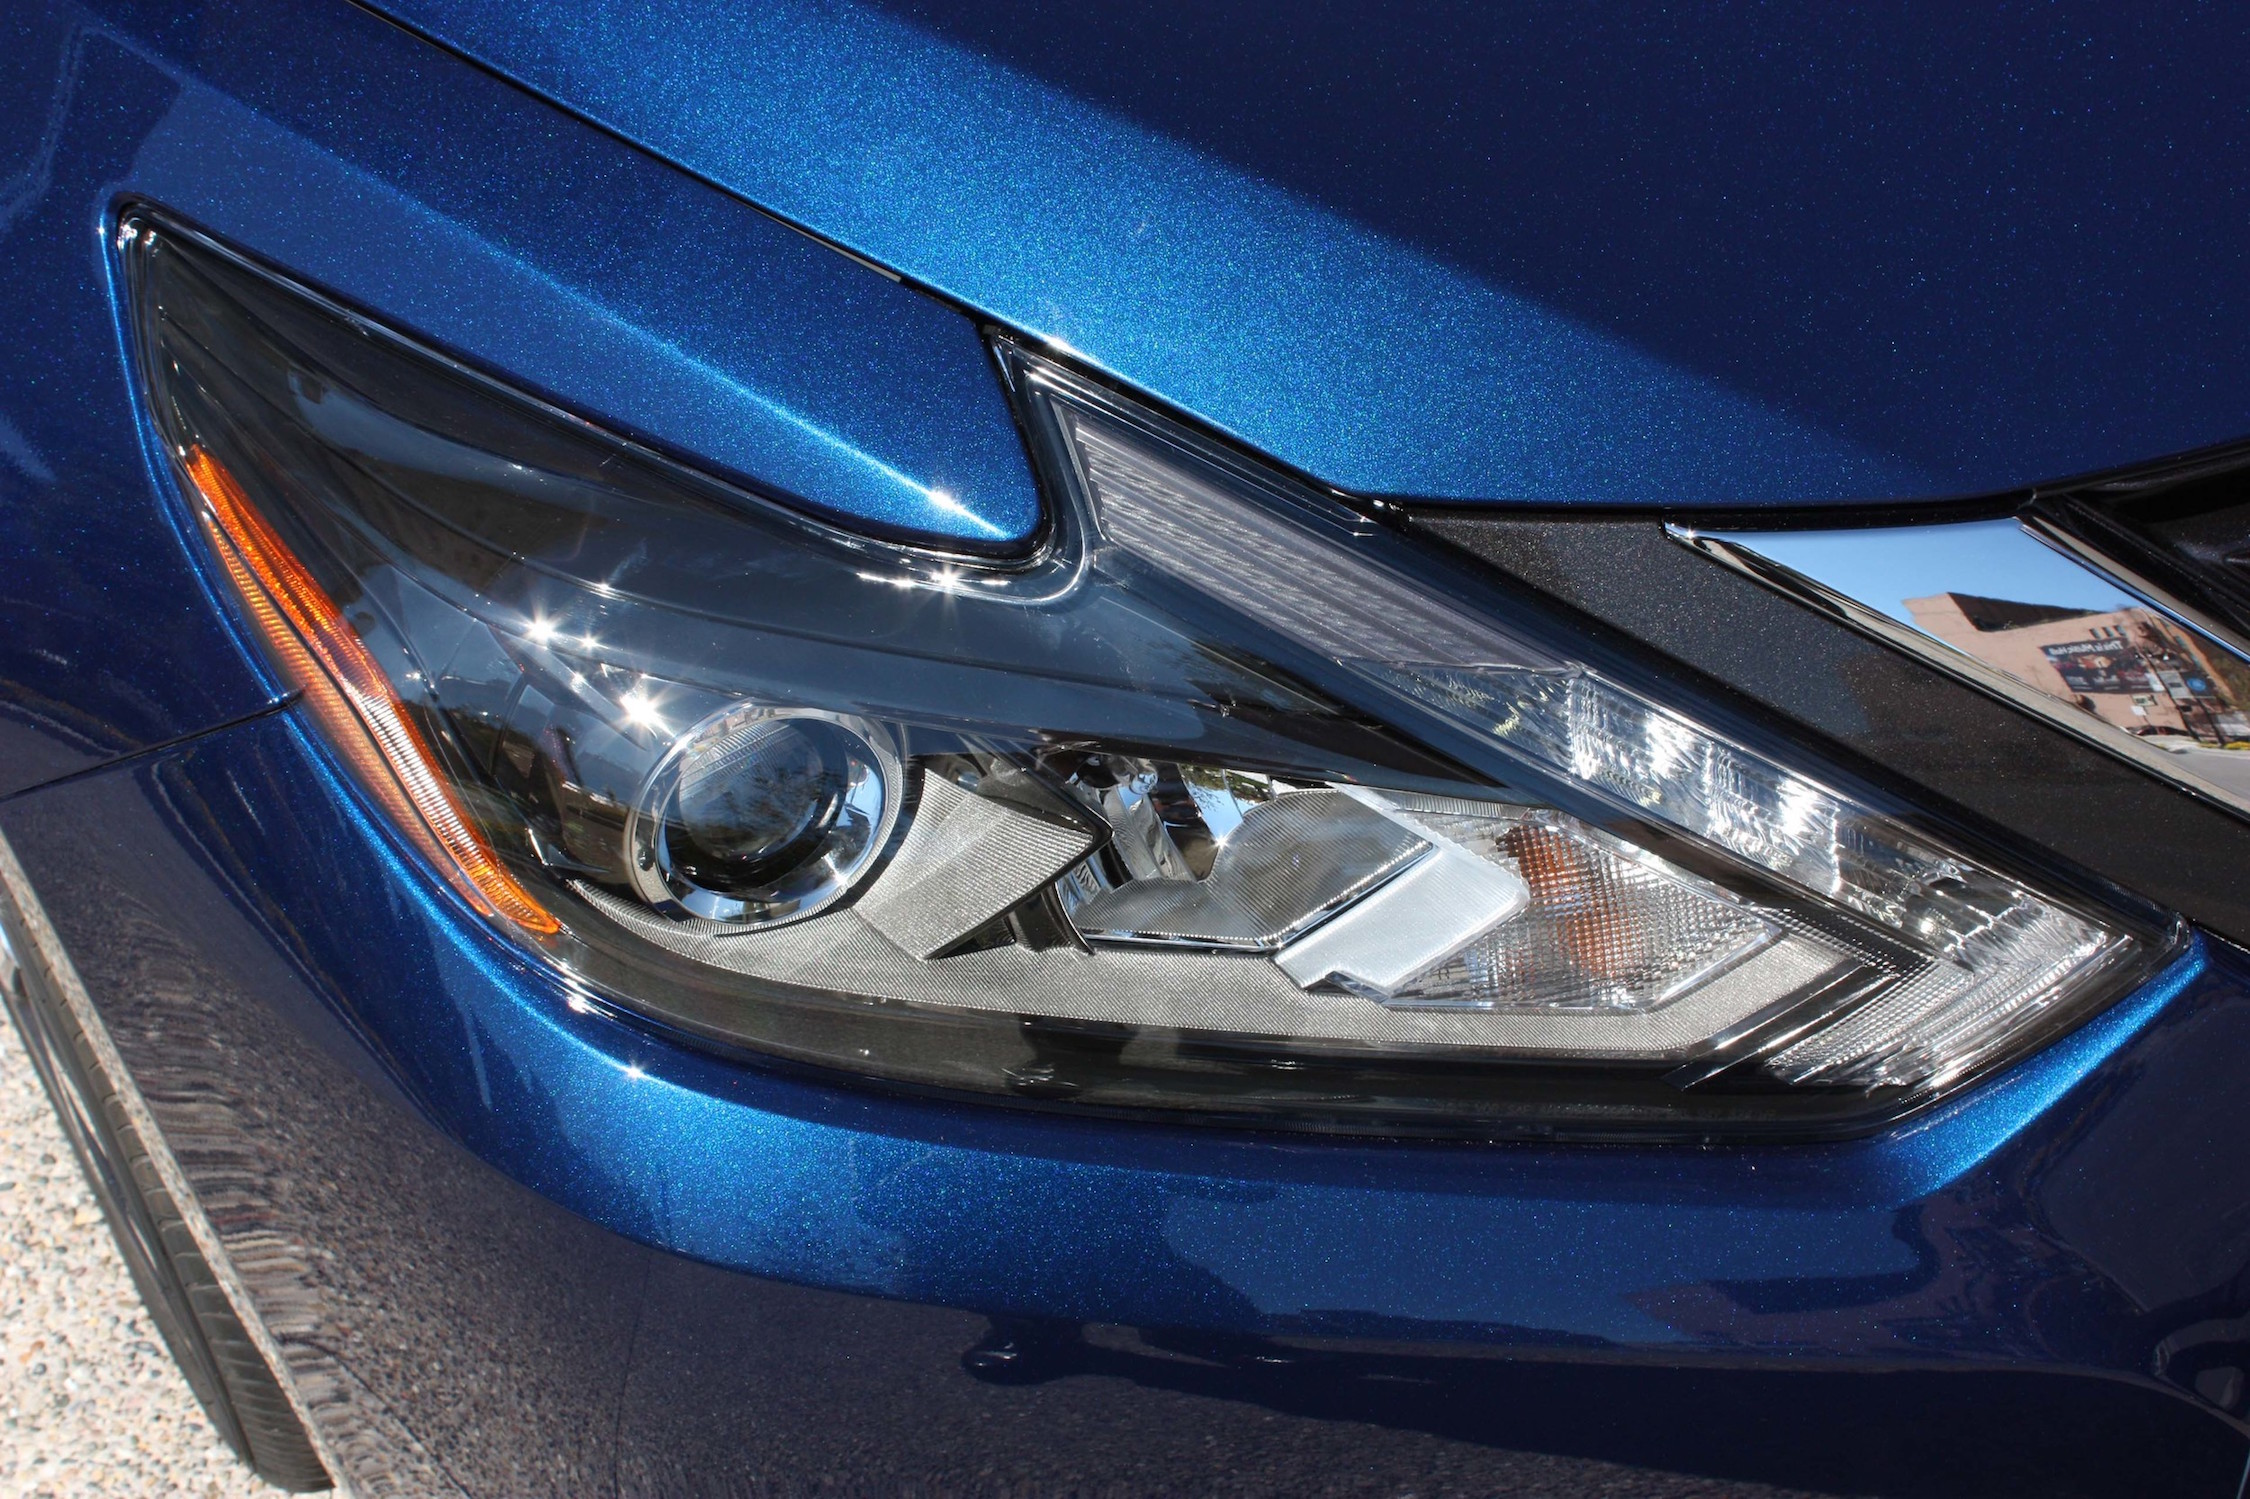 2016 Nissan Altima Exterior Headlight